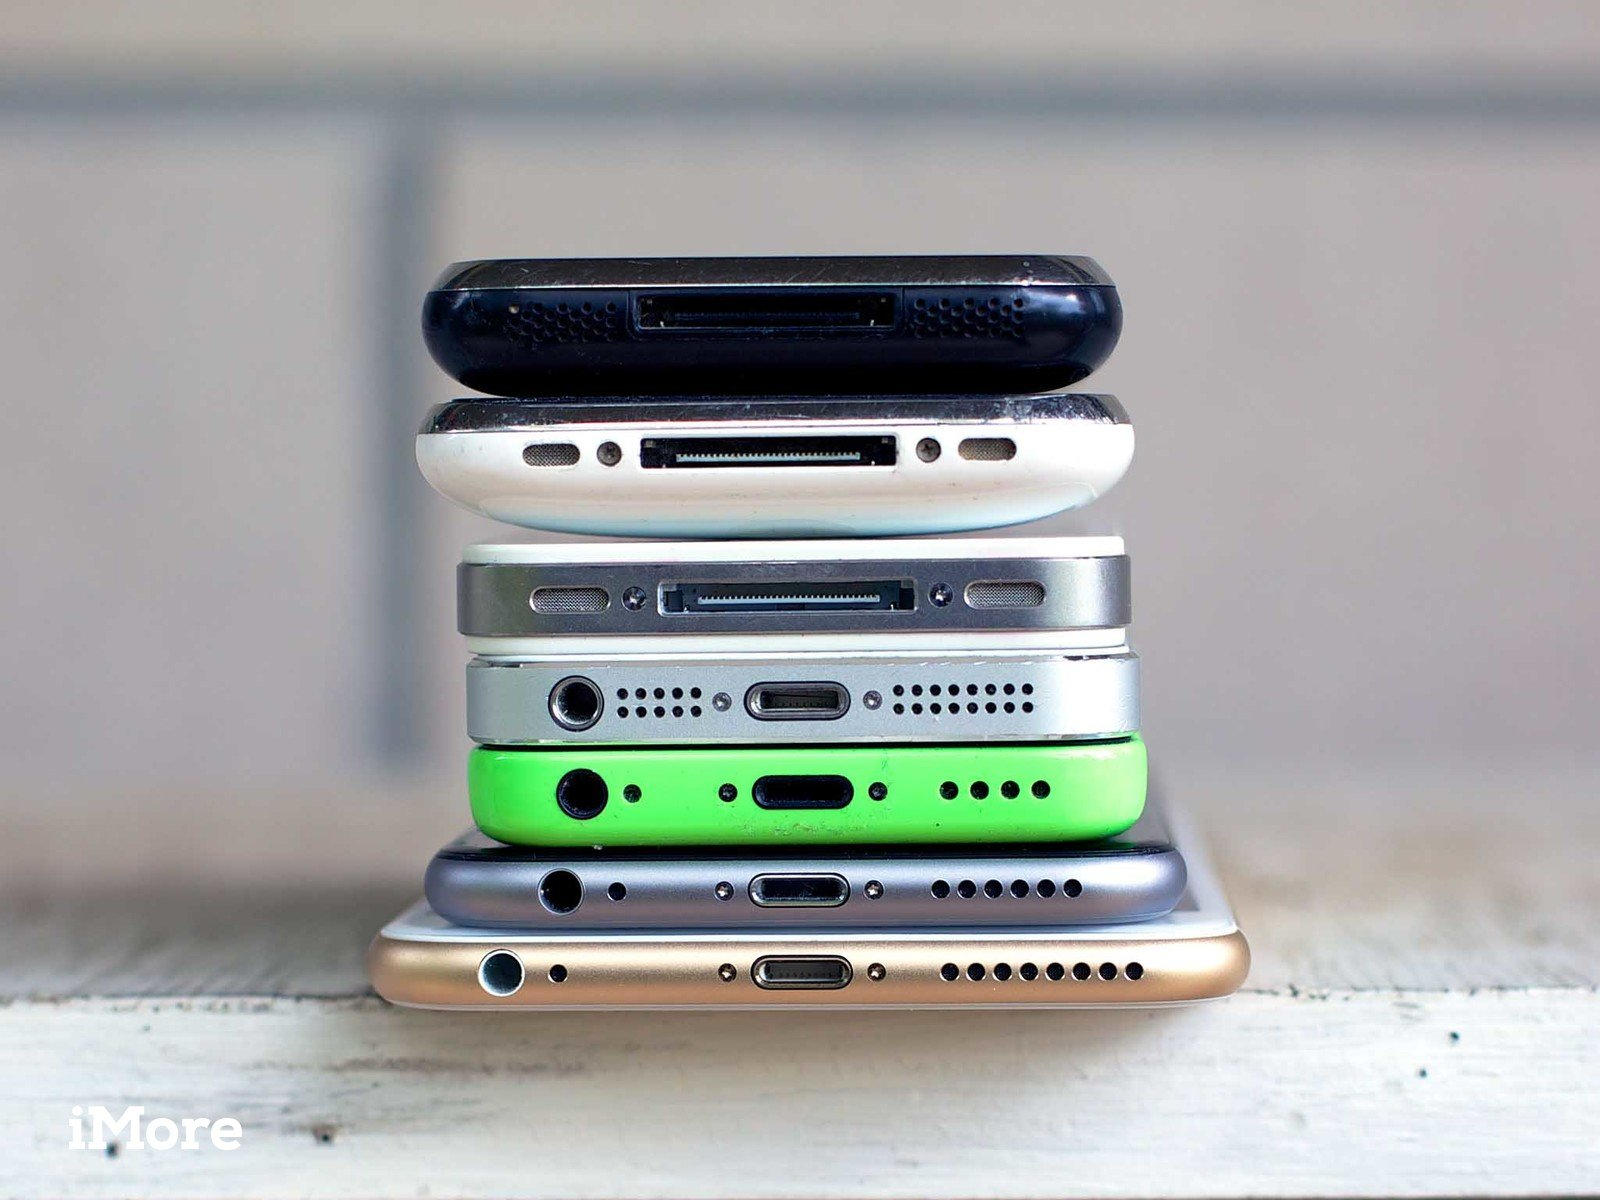 What losing the headphone jack would mean for accessibility